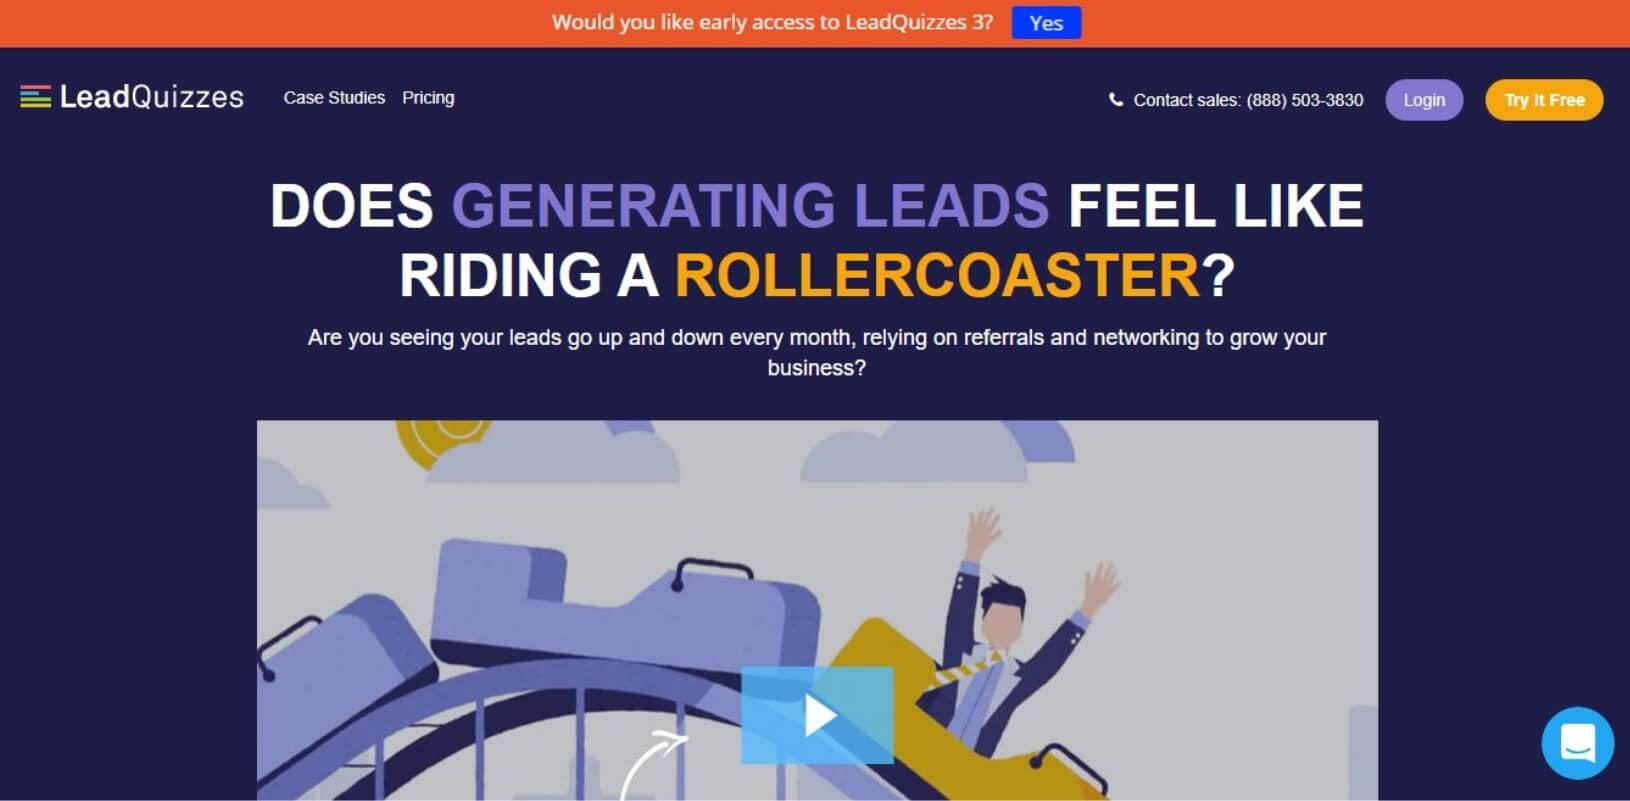 leadQuizzes lead generation tool